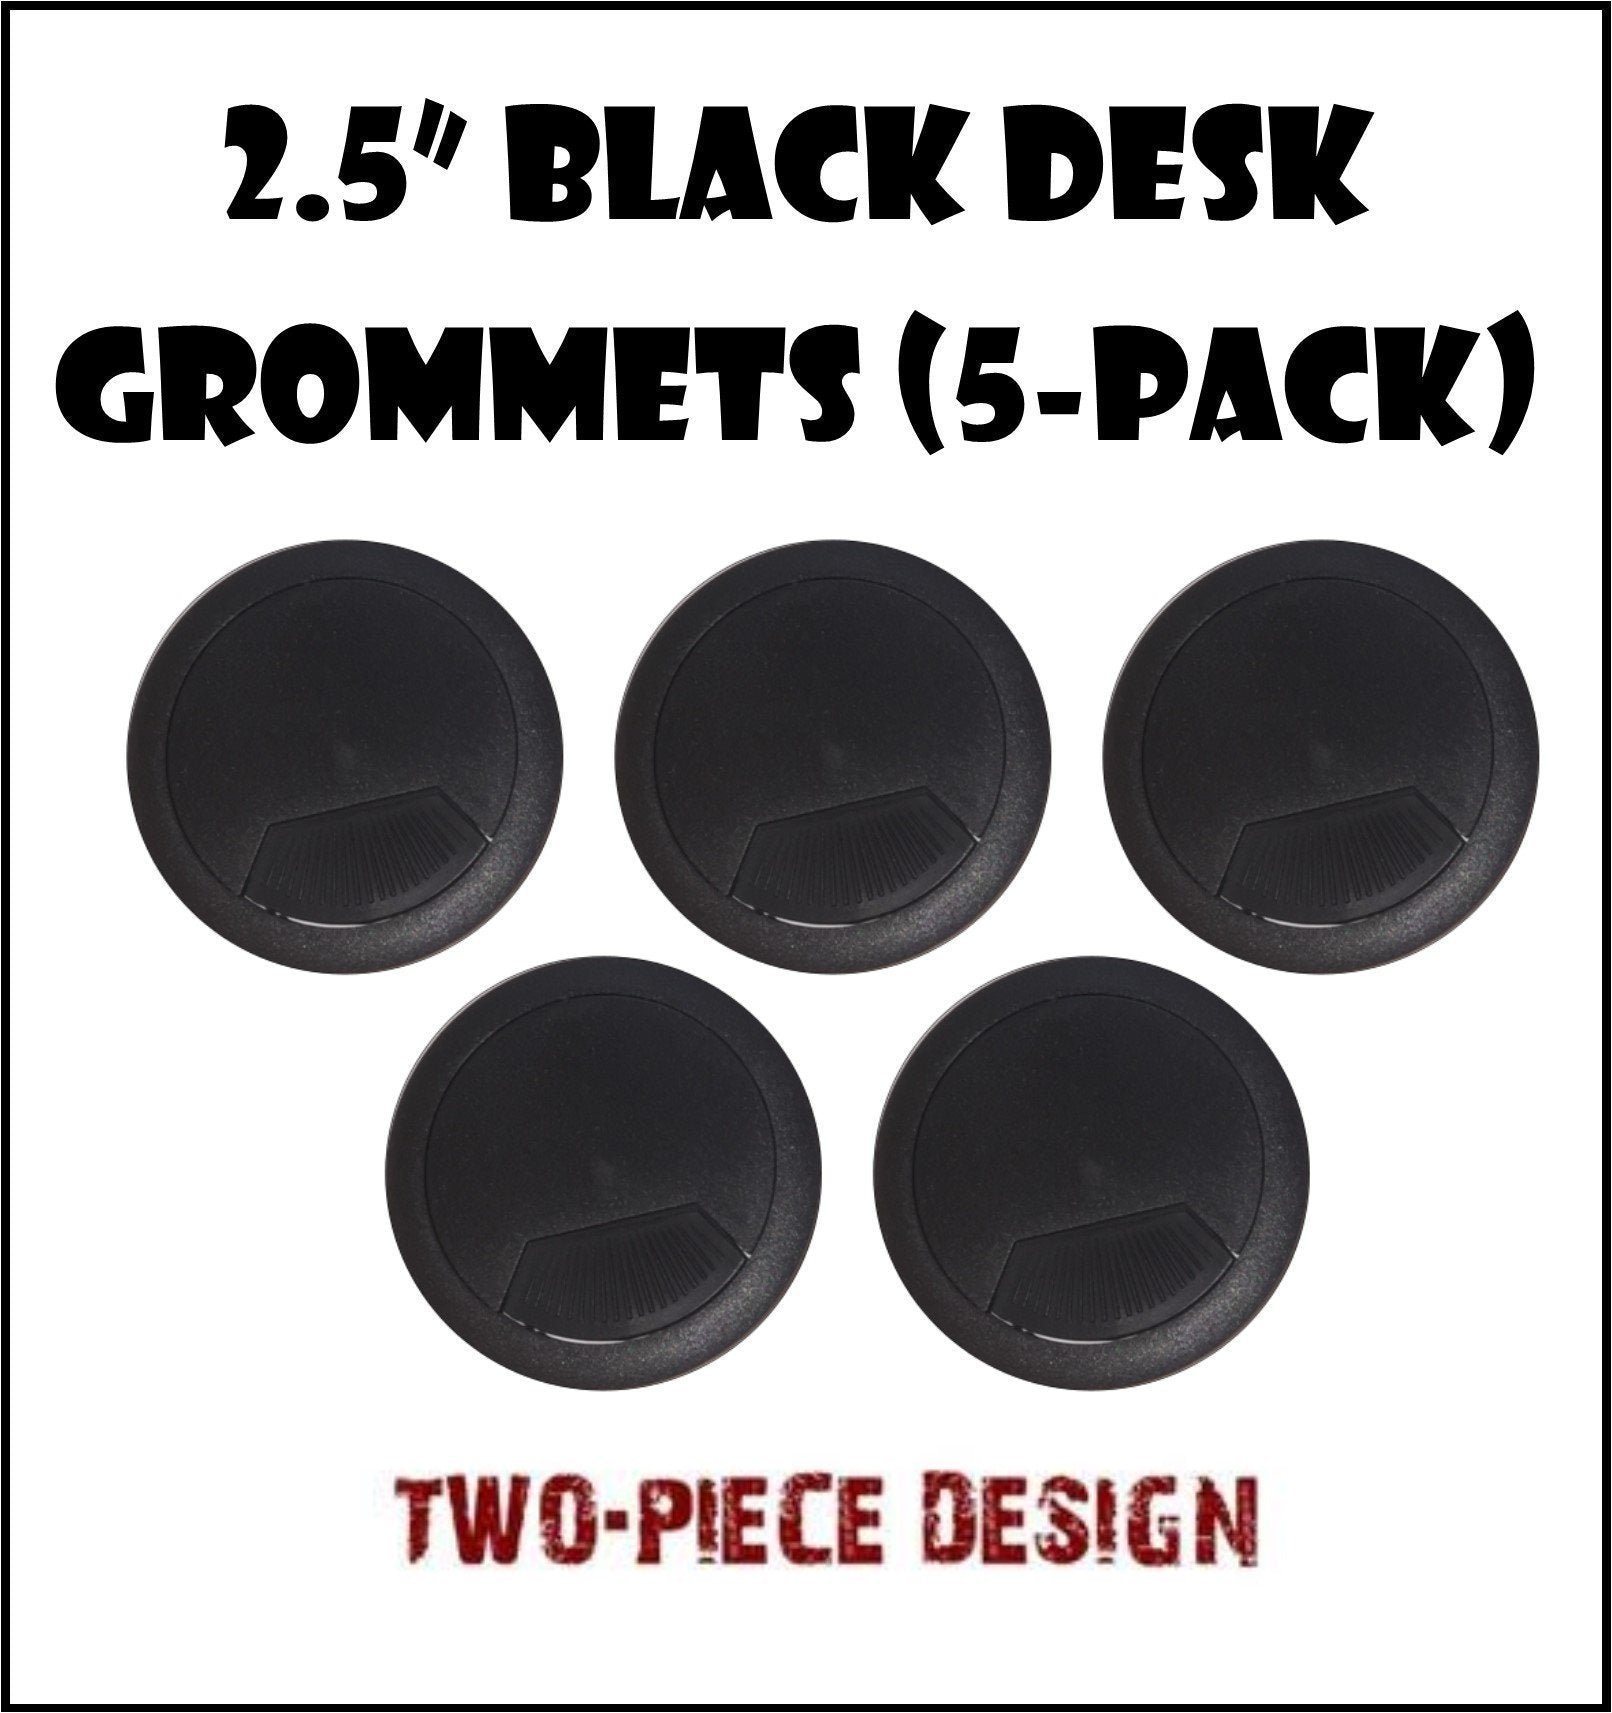 go wayfair grommets laminate desk to reviews offices shell pdx superior furniture